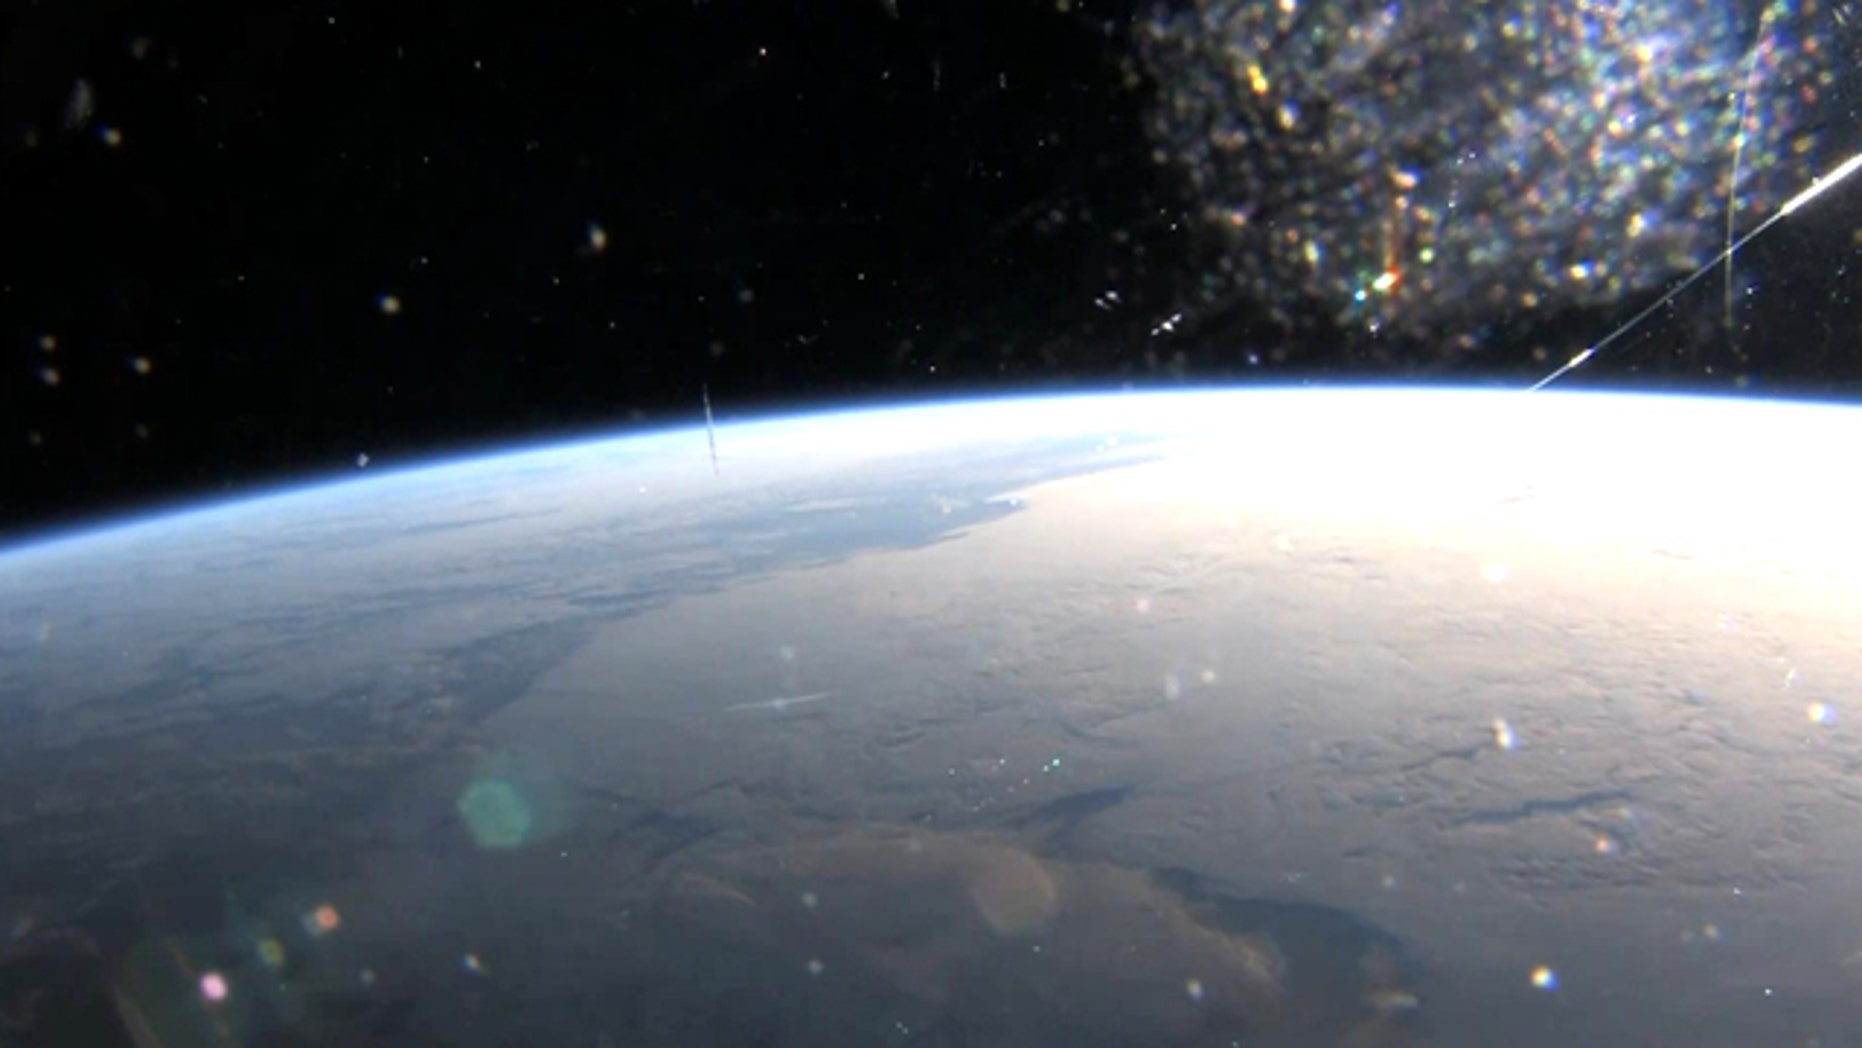 a screenshot from First Orbit, a new film that seeks to replicate the experience of Yuri Gagarin's famous first flight in space by combining archival audio with new footage from space.